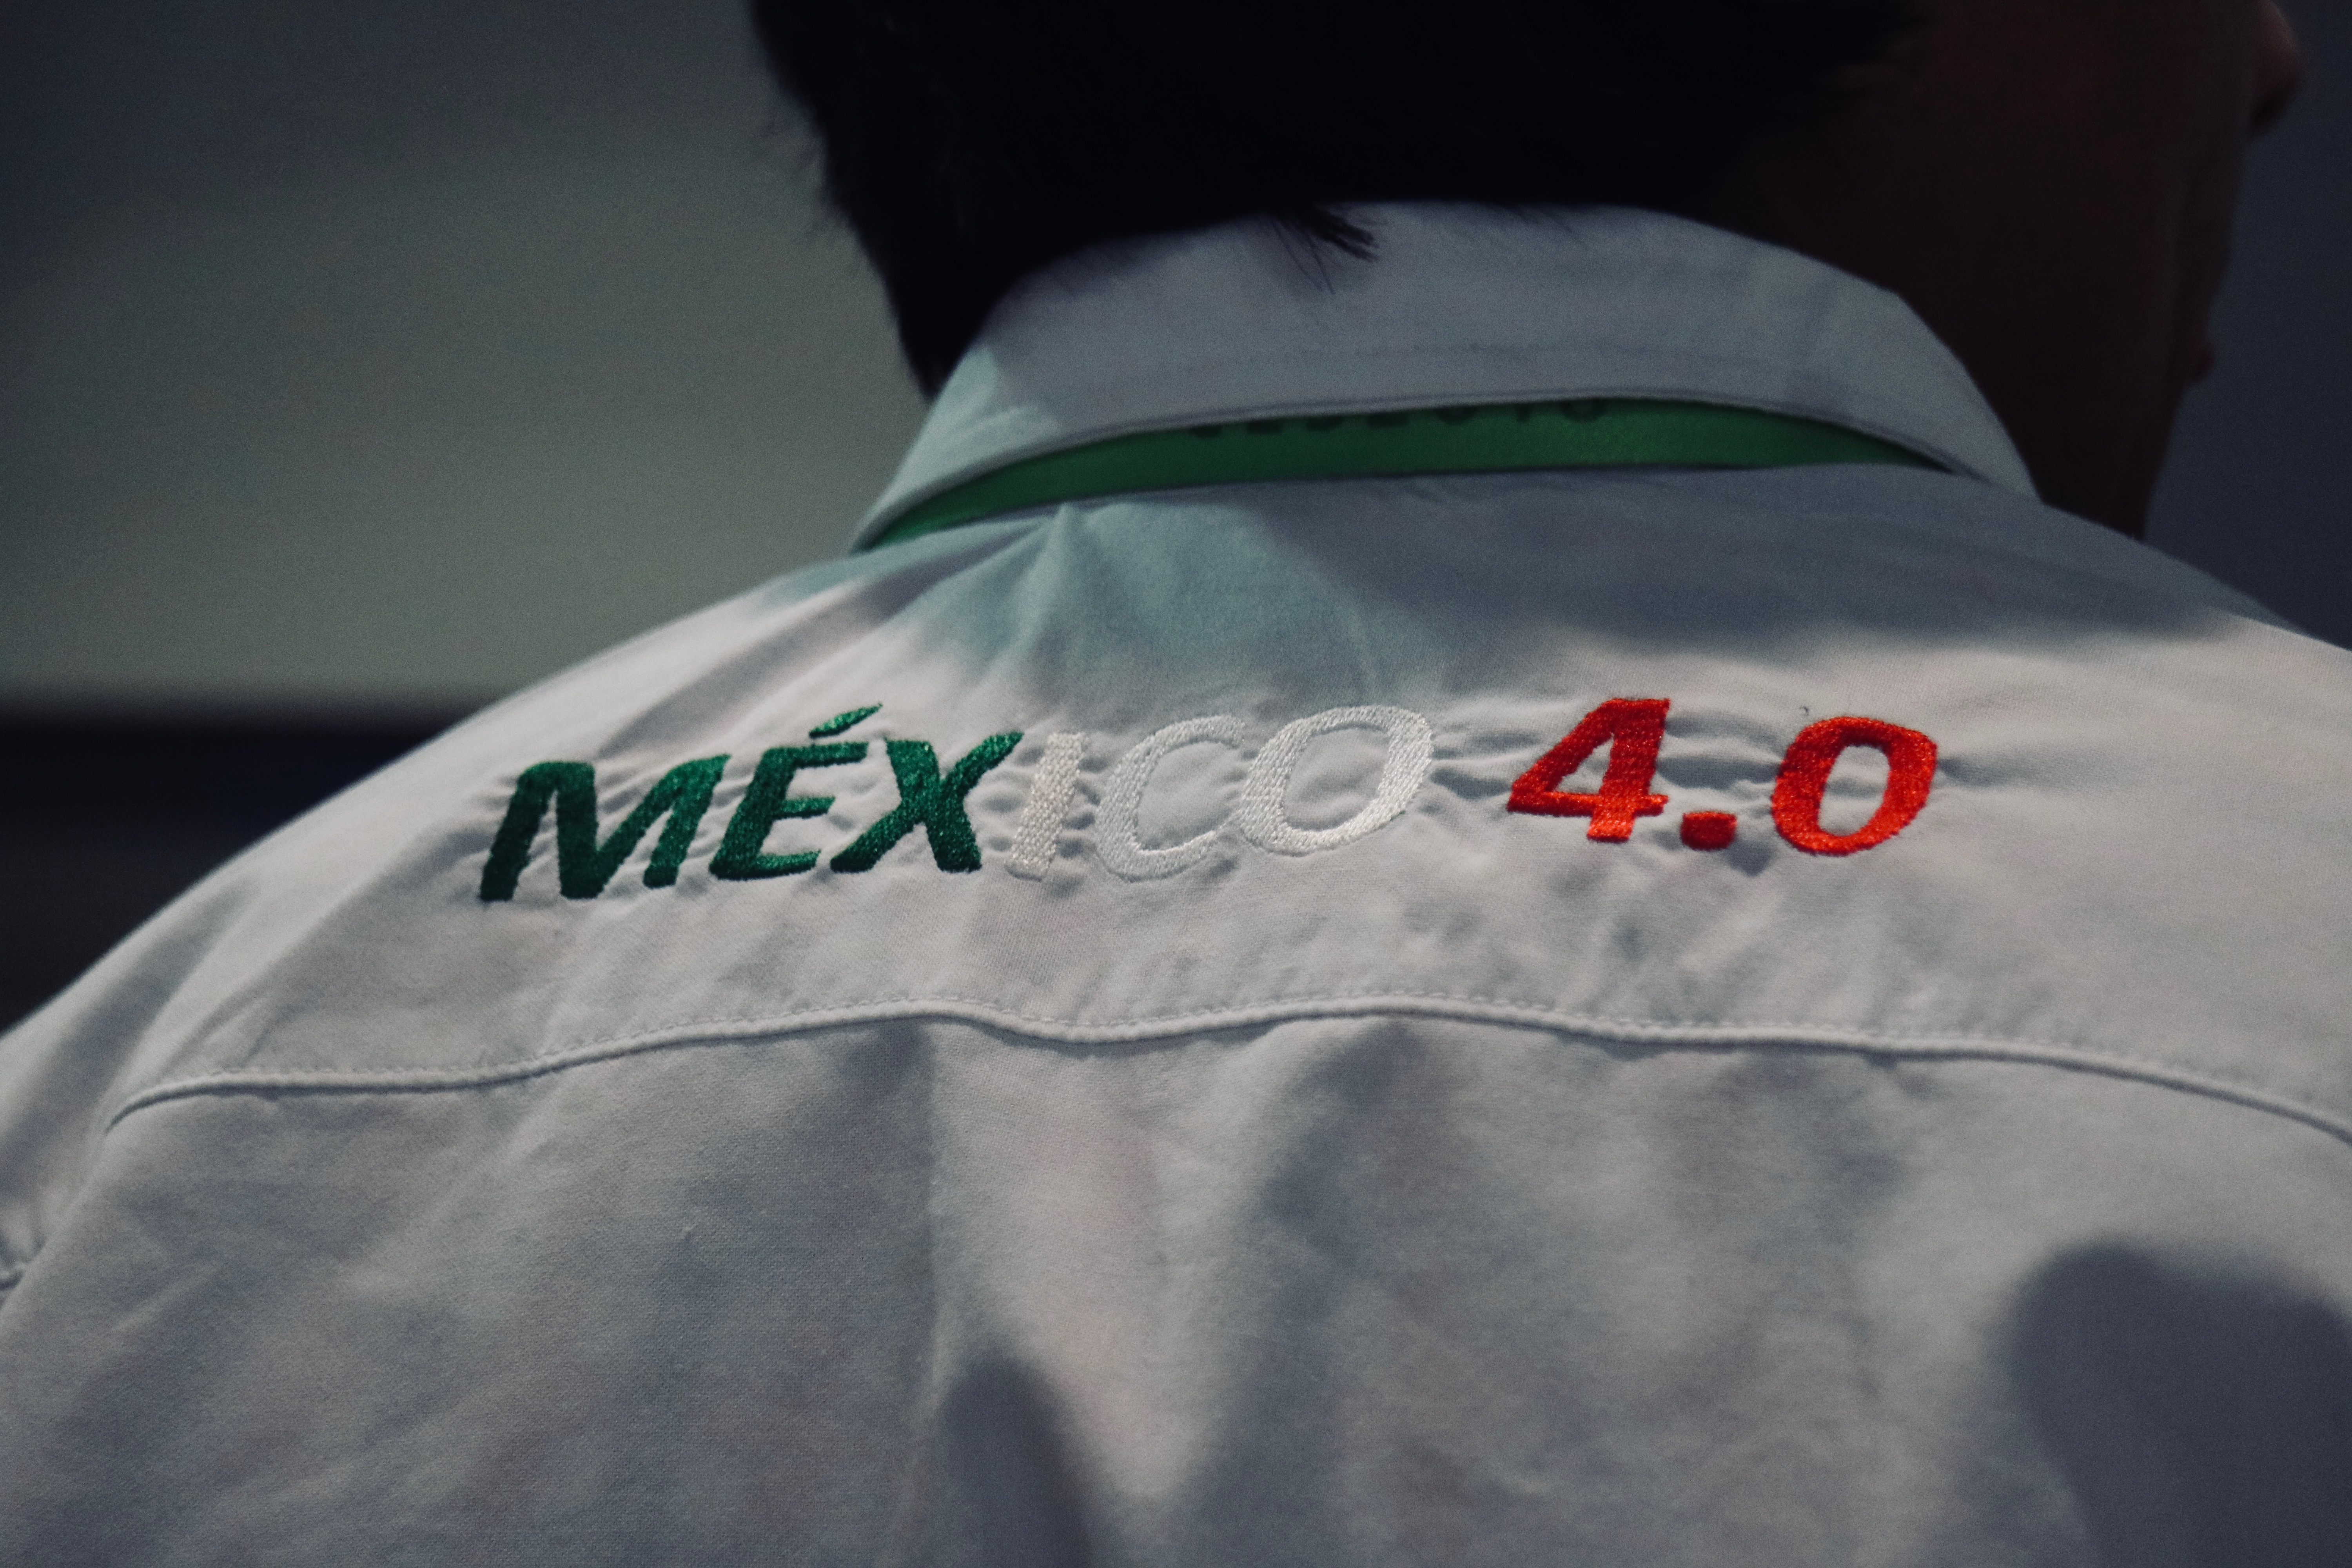 Mexicos CES 2018 presence is the start of something big